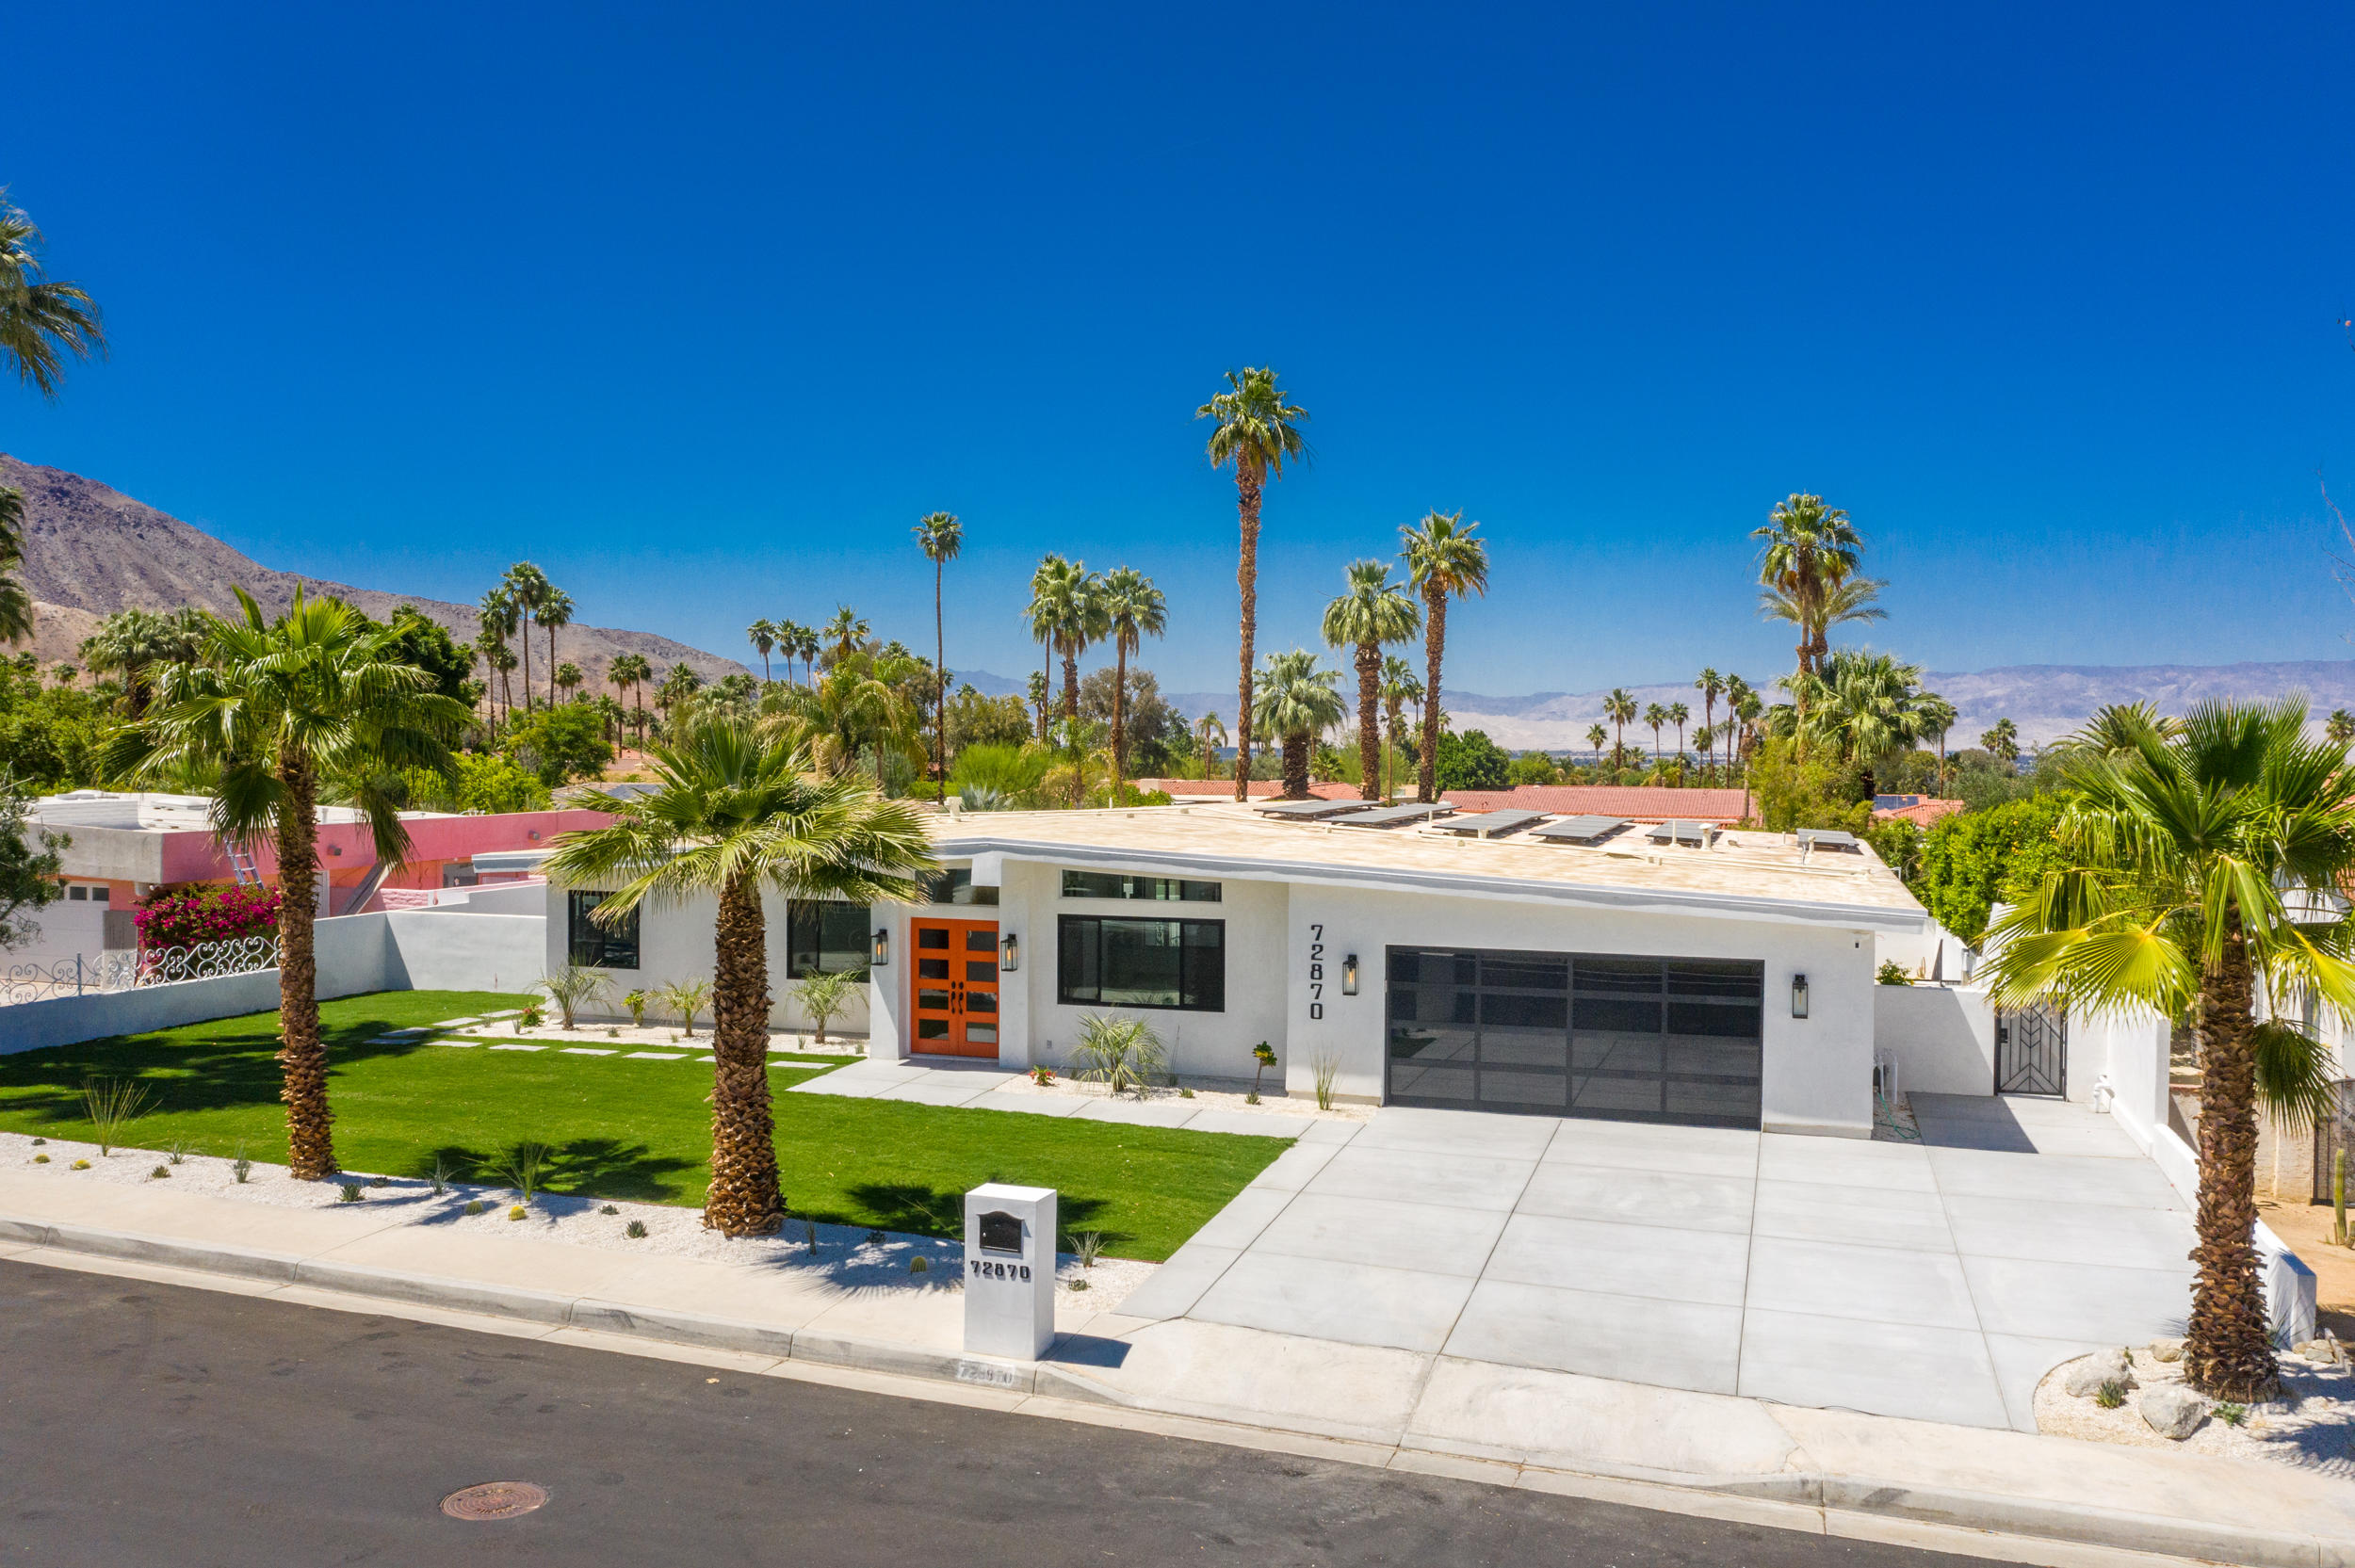 South Palm Desert STUNNING remodel. This gorgeous contemporary home was just fully renovated. Open floor plan with separation of master suite and guest bedrooms. Large kitchen with ample counter and cabinet space, as well as sunken bar area. This masterpiece property is also equipped with a private Casita with full kitchenette. Step into the expansive backyard with over a quarter acre of space to entertain! Dine on the first level under the covered patio or step down to the lower level to swim in the sparking pool and lounge by the custom firepit. Amazing panoramic mountain views all around! Close in proximity to El Paseo, shopping, restaurants, and nightlife! Call today for more information!